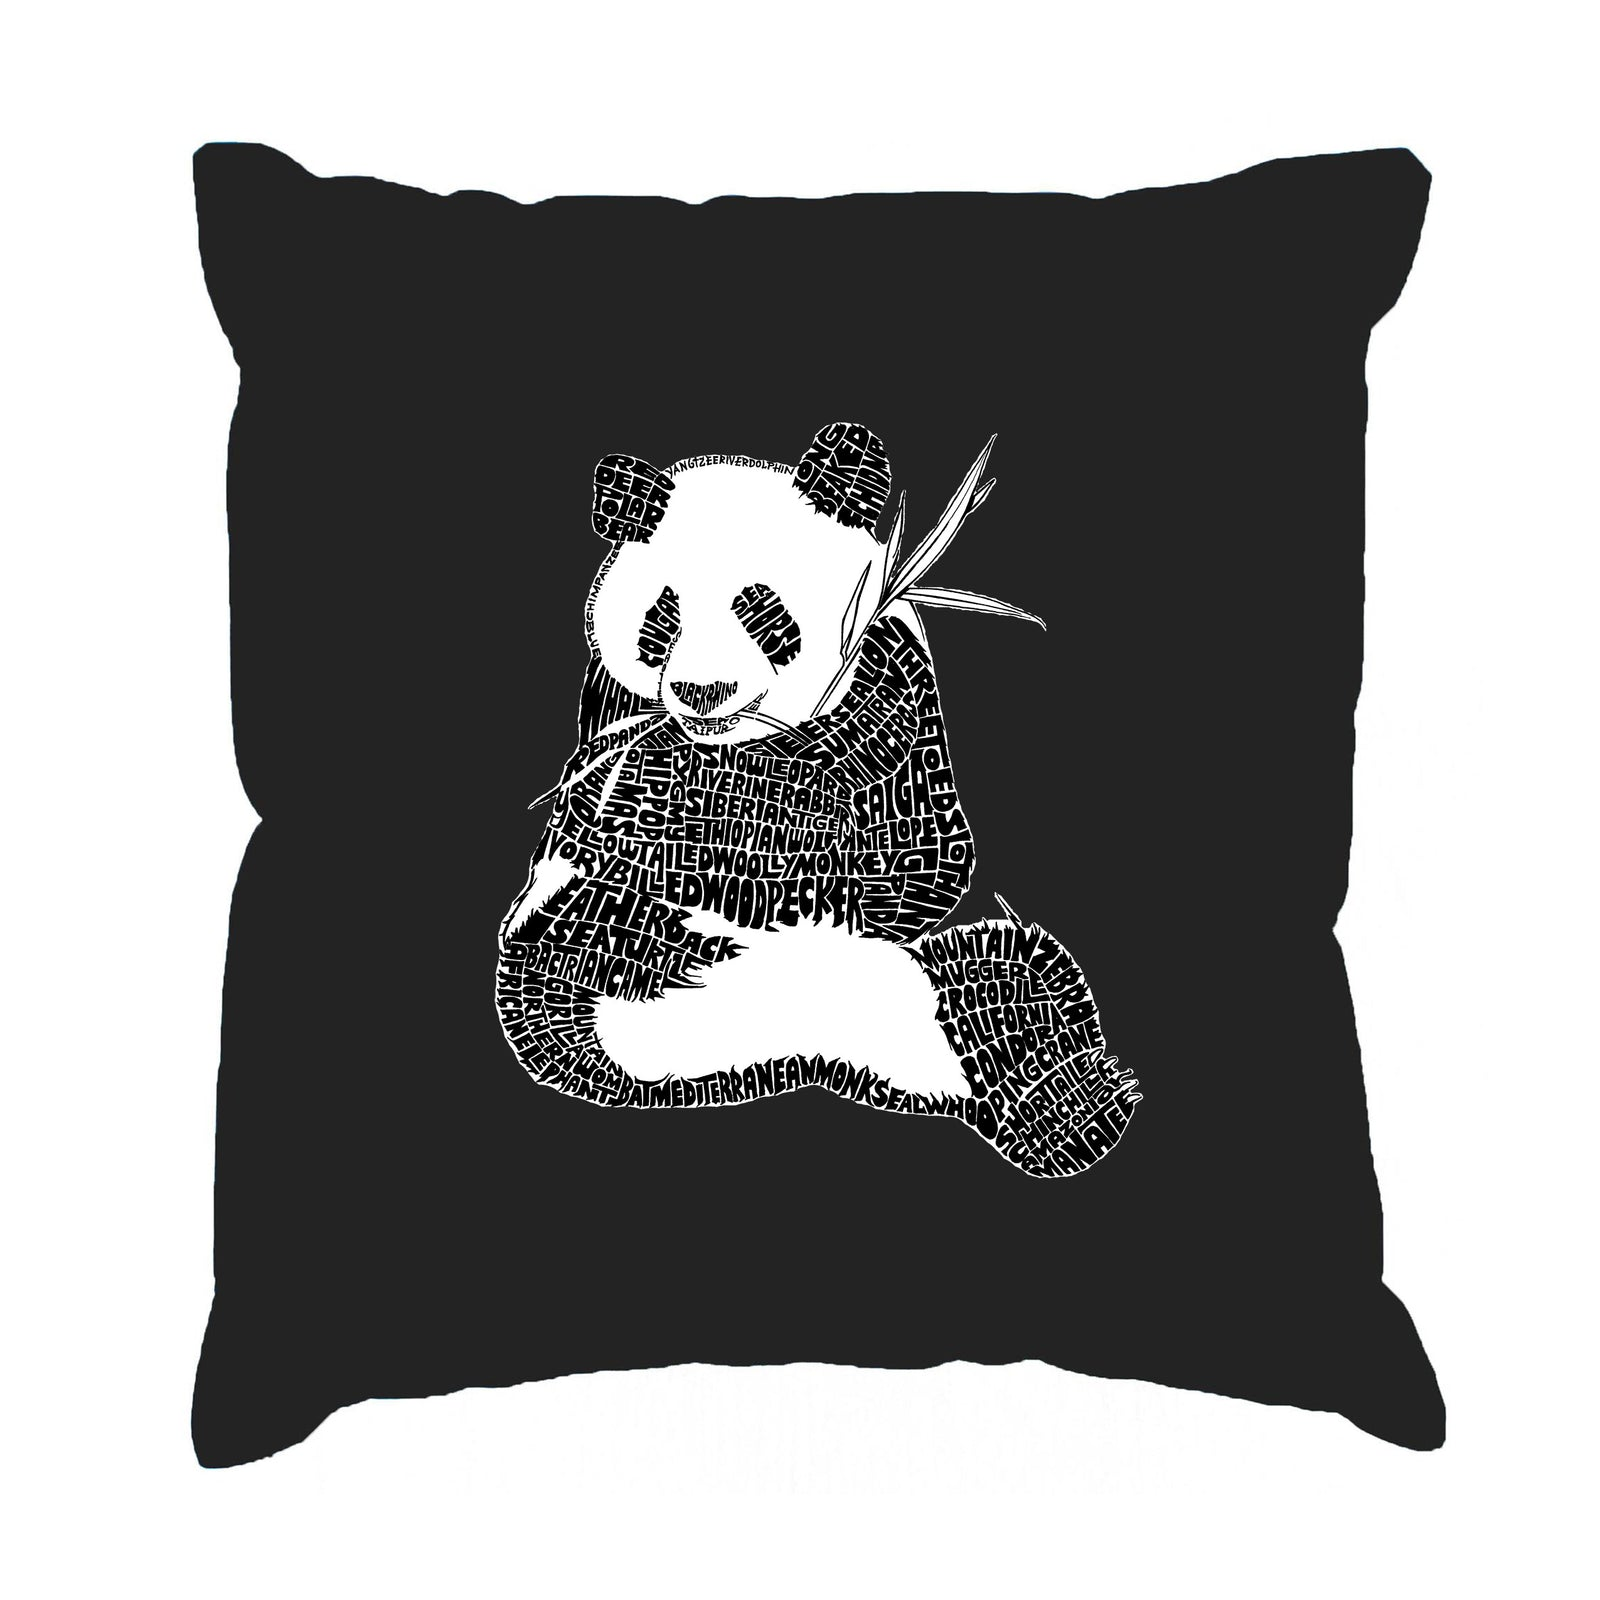 Throw Pillow Cover - Endangered SPECIES